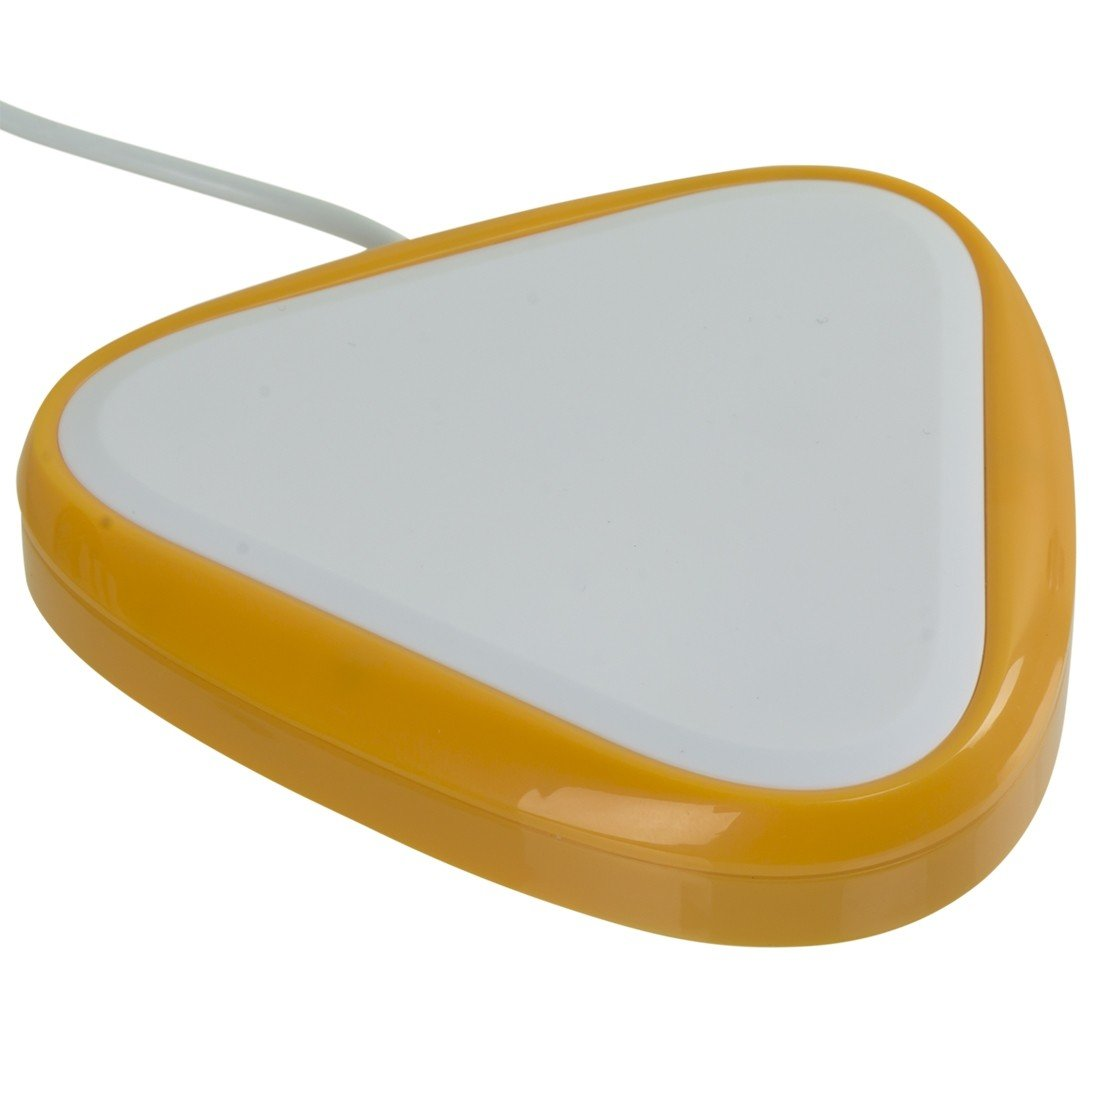 AramediA Compatible with Big Candy Corn Proximity Sensor Switch - AbleNet - Part Number 10000025